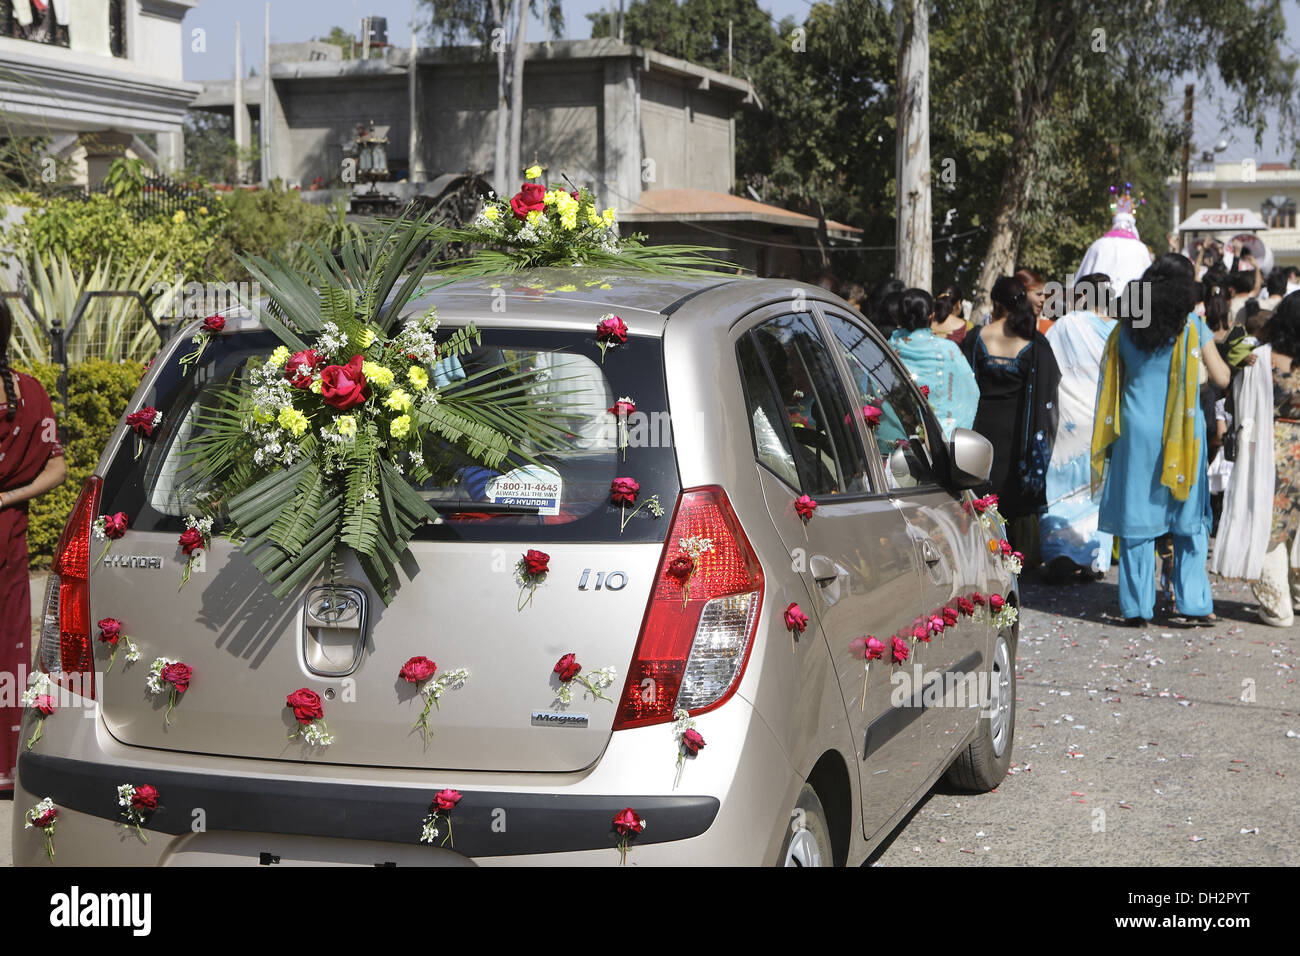 Decoration on the wedding car of roses 10